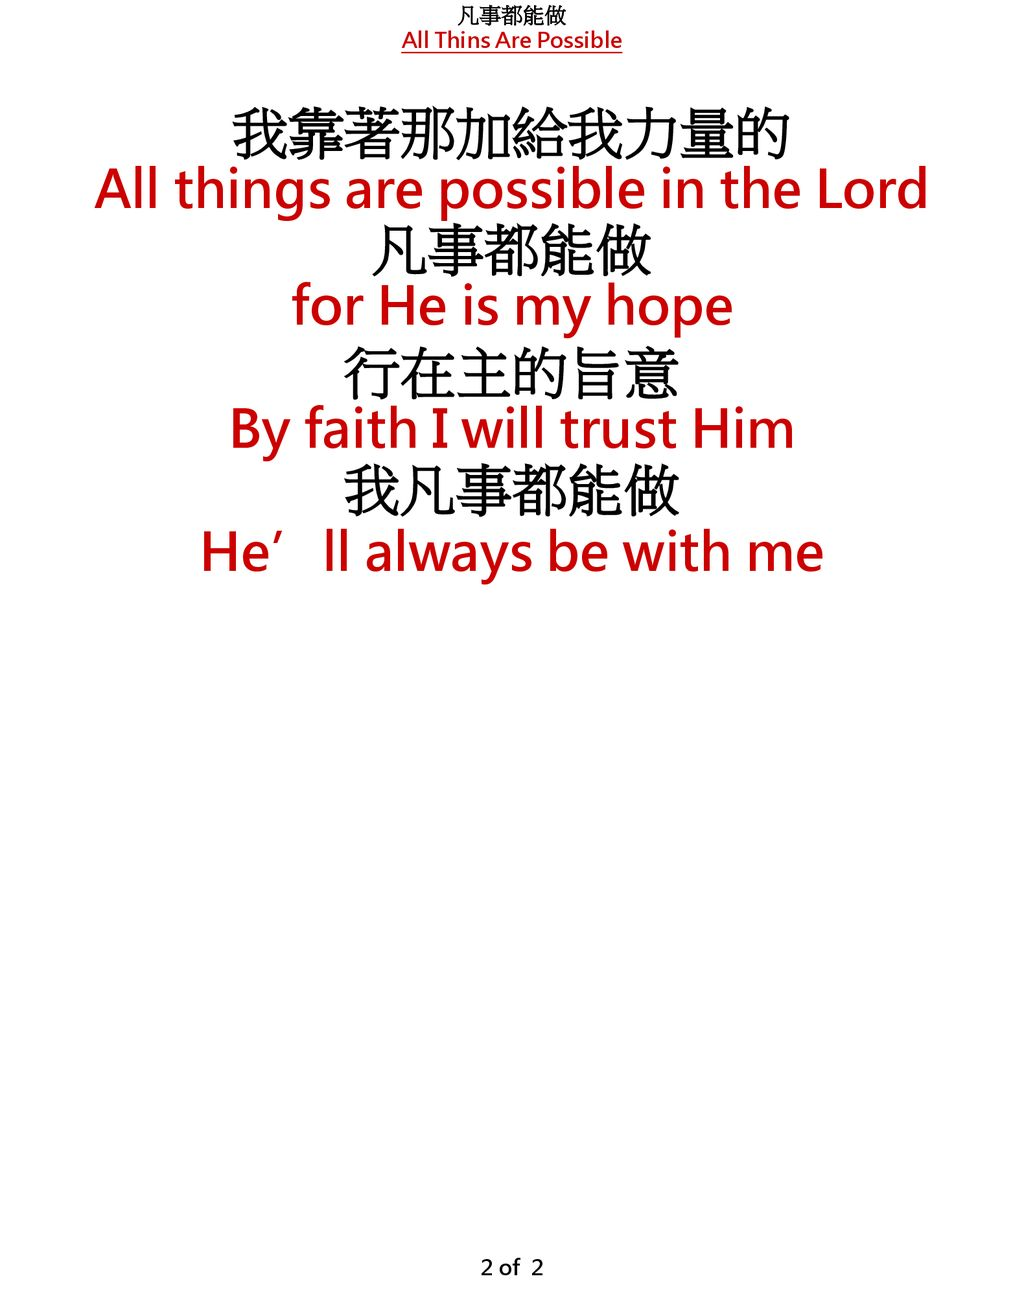 All things are possible in the Lord By faith I will trust Him